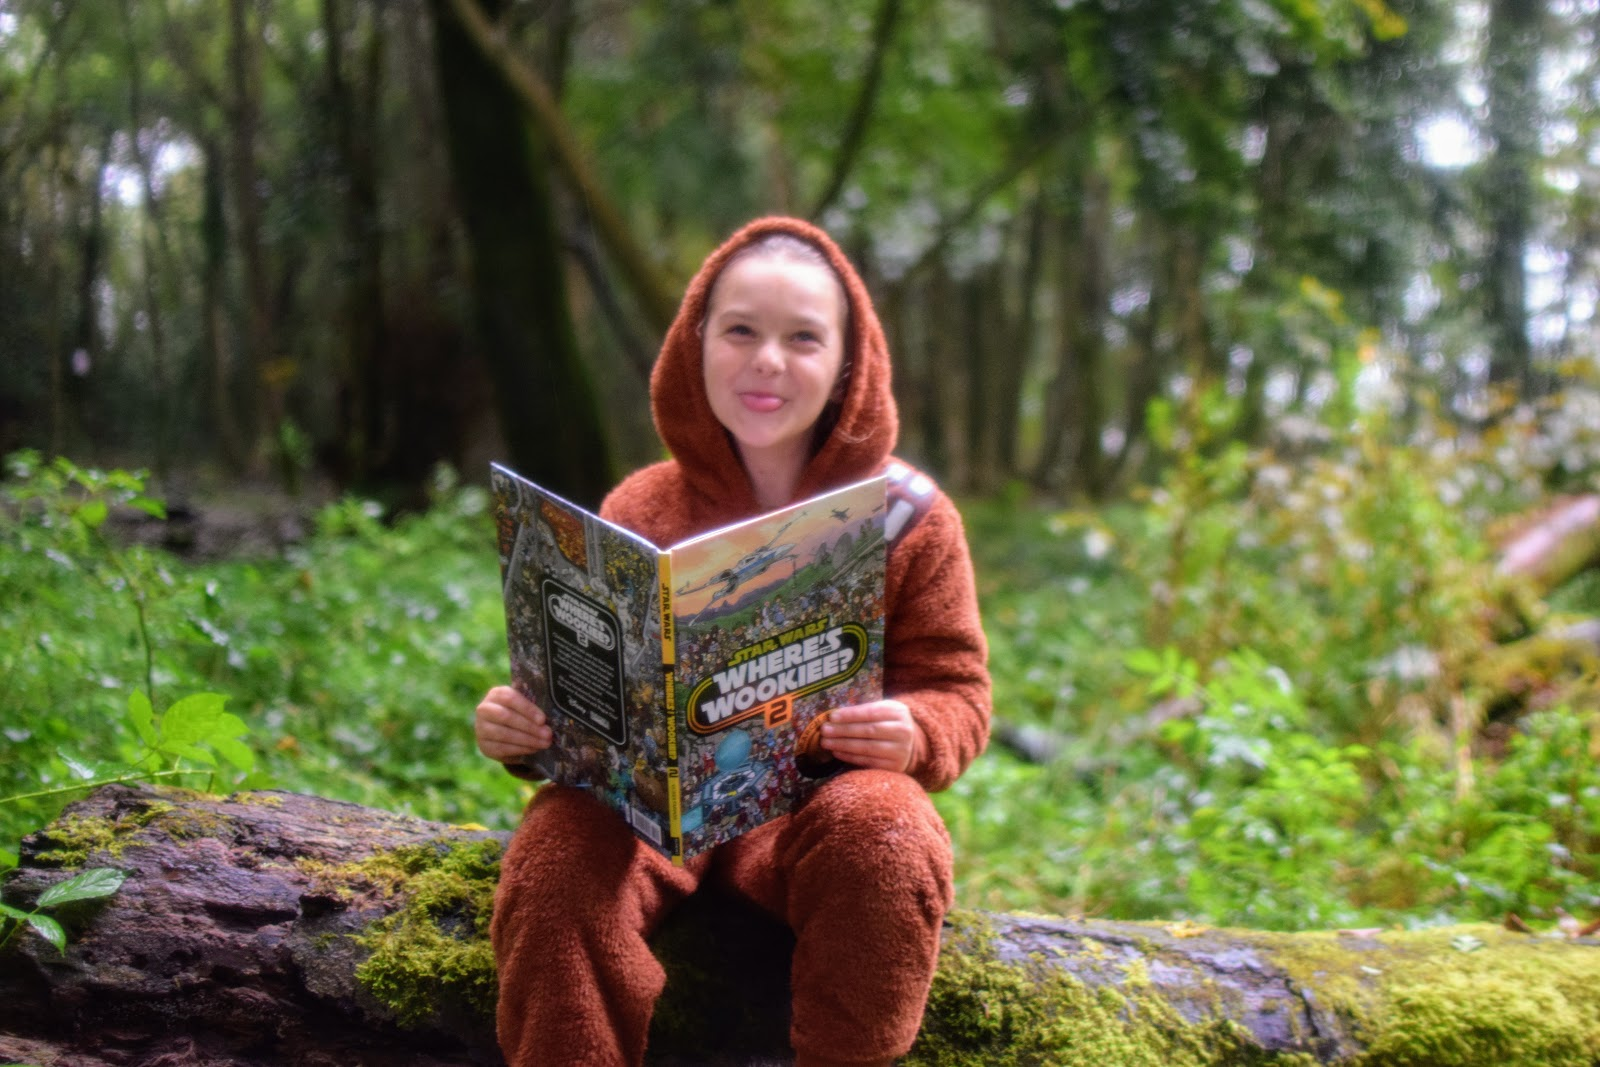 , Playing Where's The Wookiee at Withybush Woods:  Win Where's The  Wookiee? Books 1 & 2